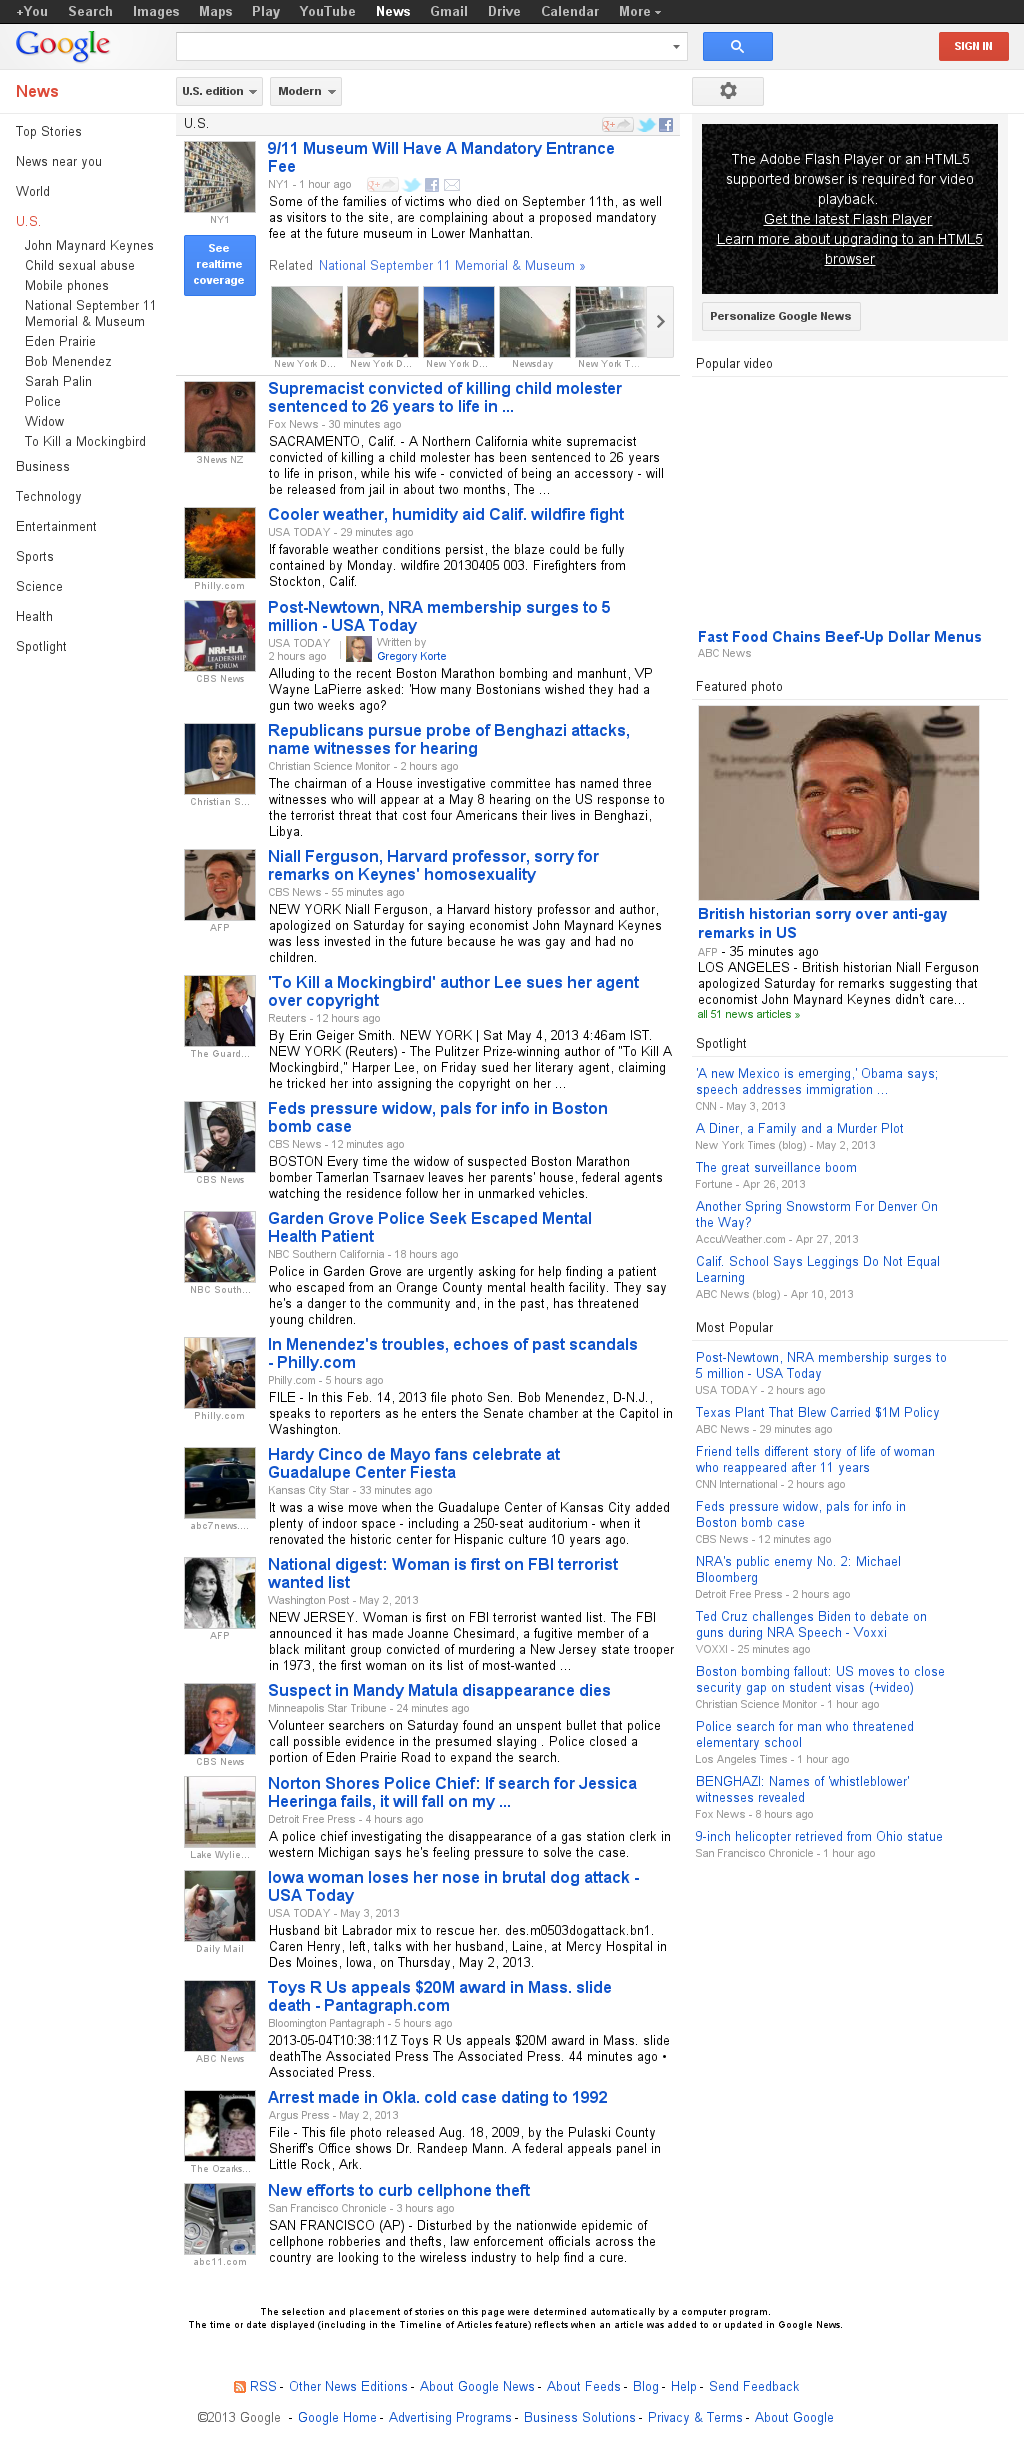 Google News: U.S. at Saturday May 4, 2013, 10:11 p.m. UTC